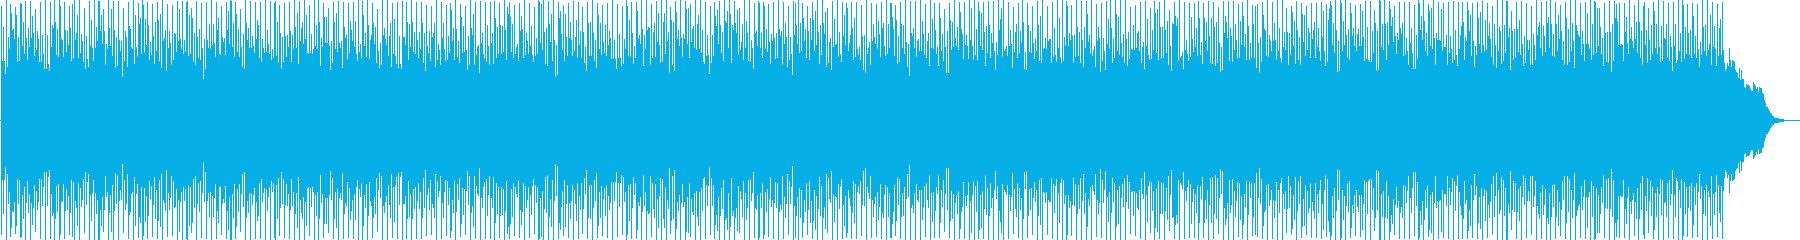 A pop song full of exhilaration's reproduced waveform